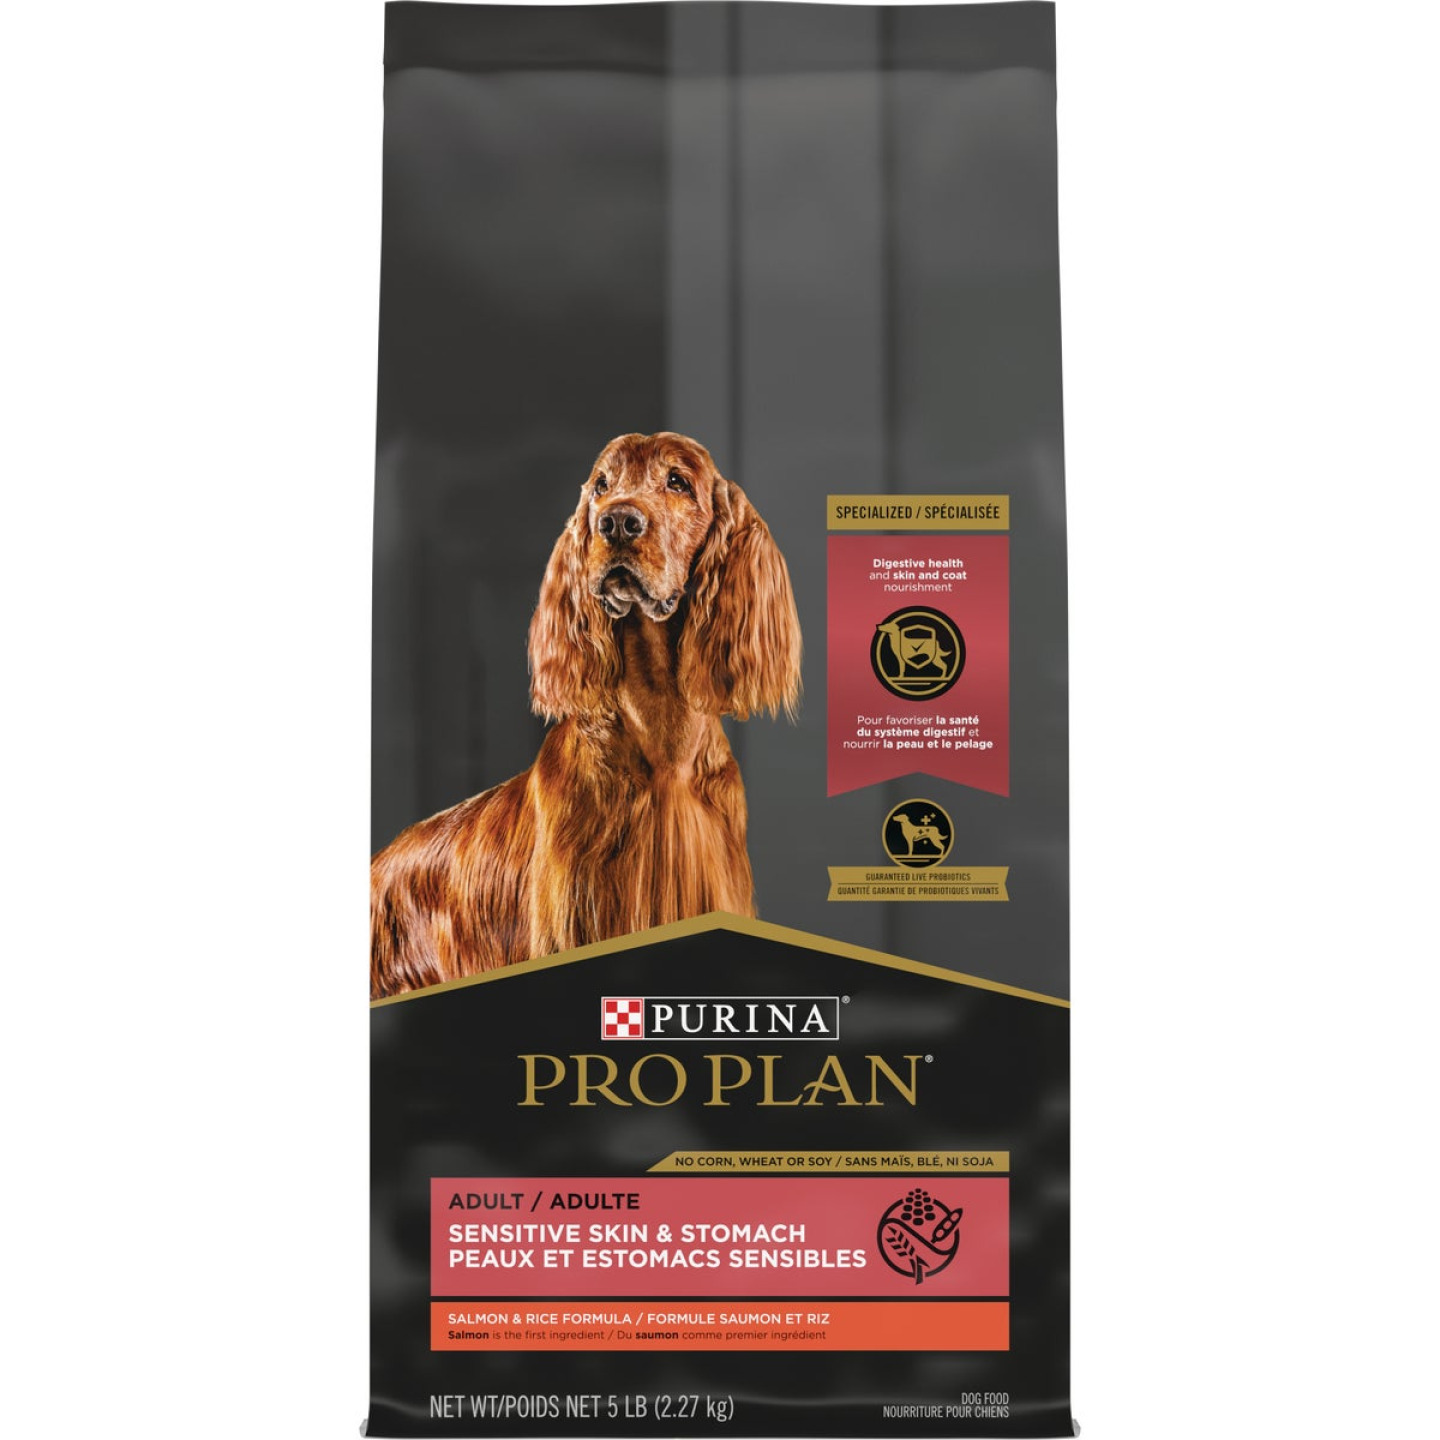 Purina Pro Plan Sensitive Skin & Stomach 6 Lb. Salmon & Rice Flavor Adult Dry Dog Food Image 1